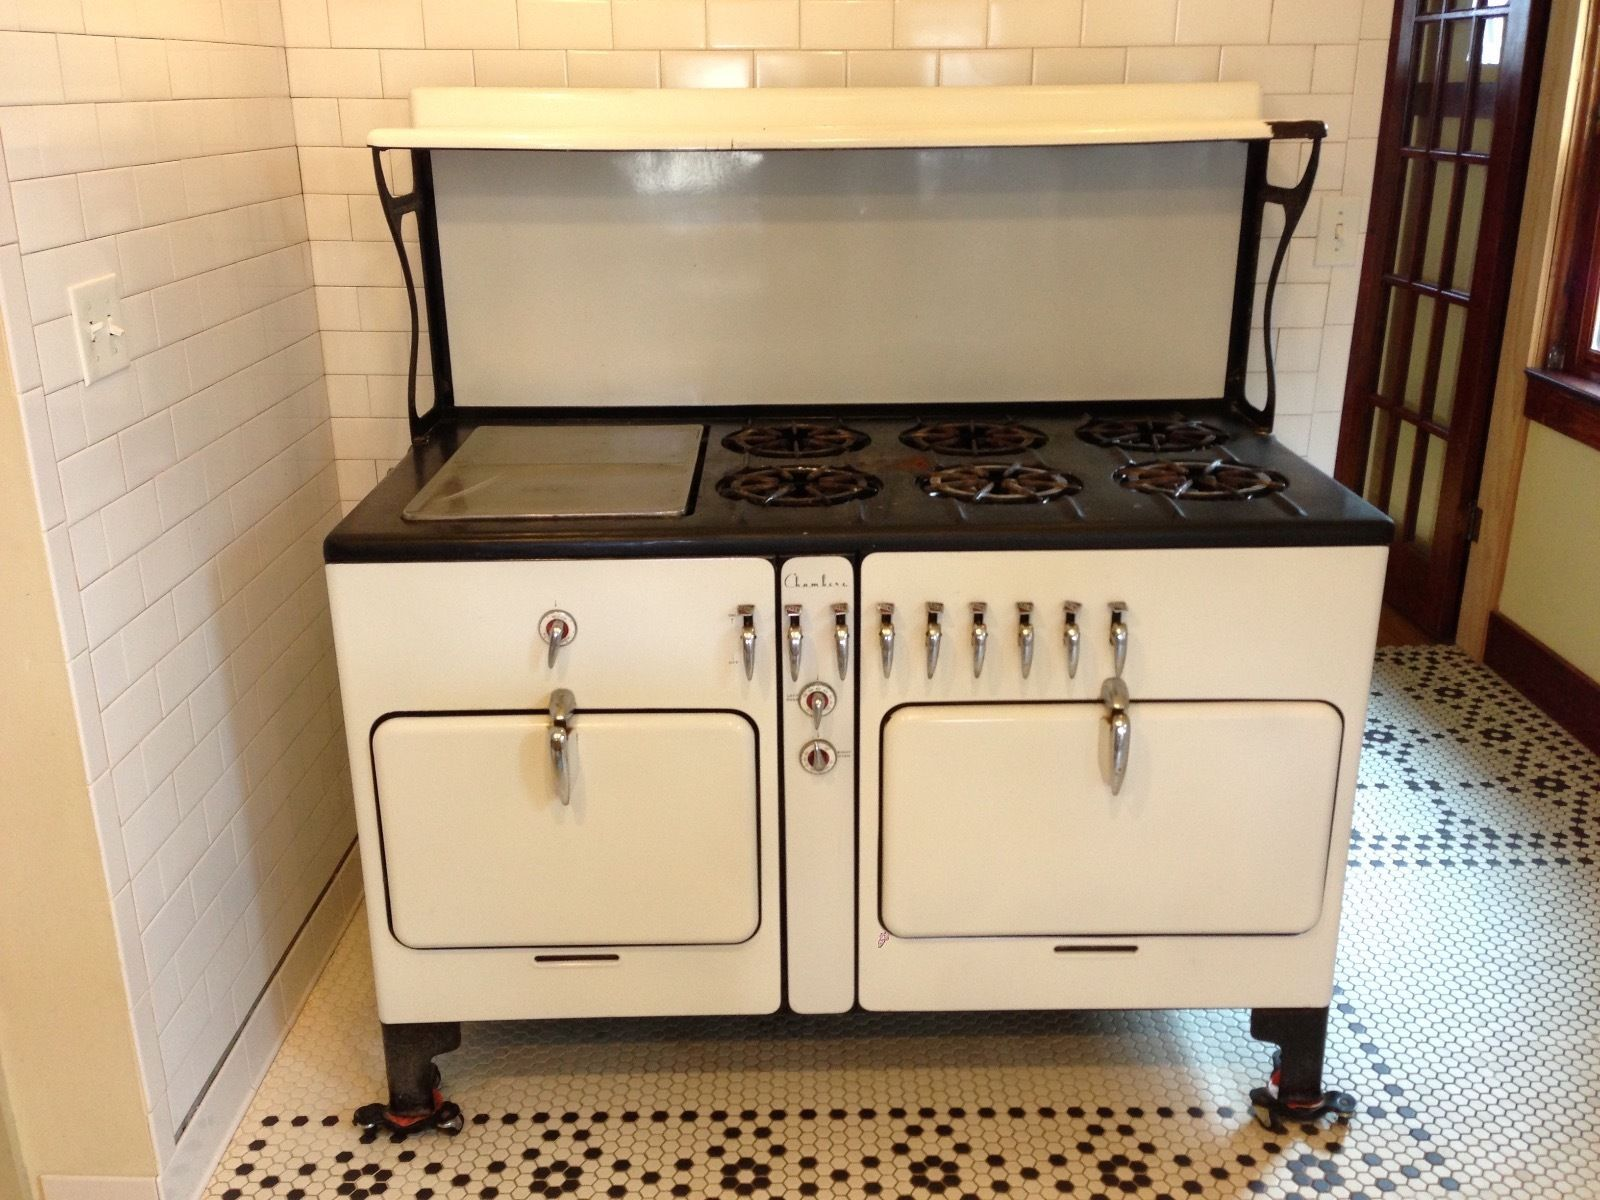 Rare Massive Antique Chambers Imperial Gas Stove 6 Burner Dual Oven Model 7960 A Dream Kitchens Design Oven Models Antique Kitchen